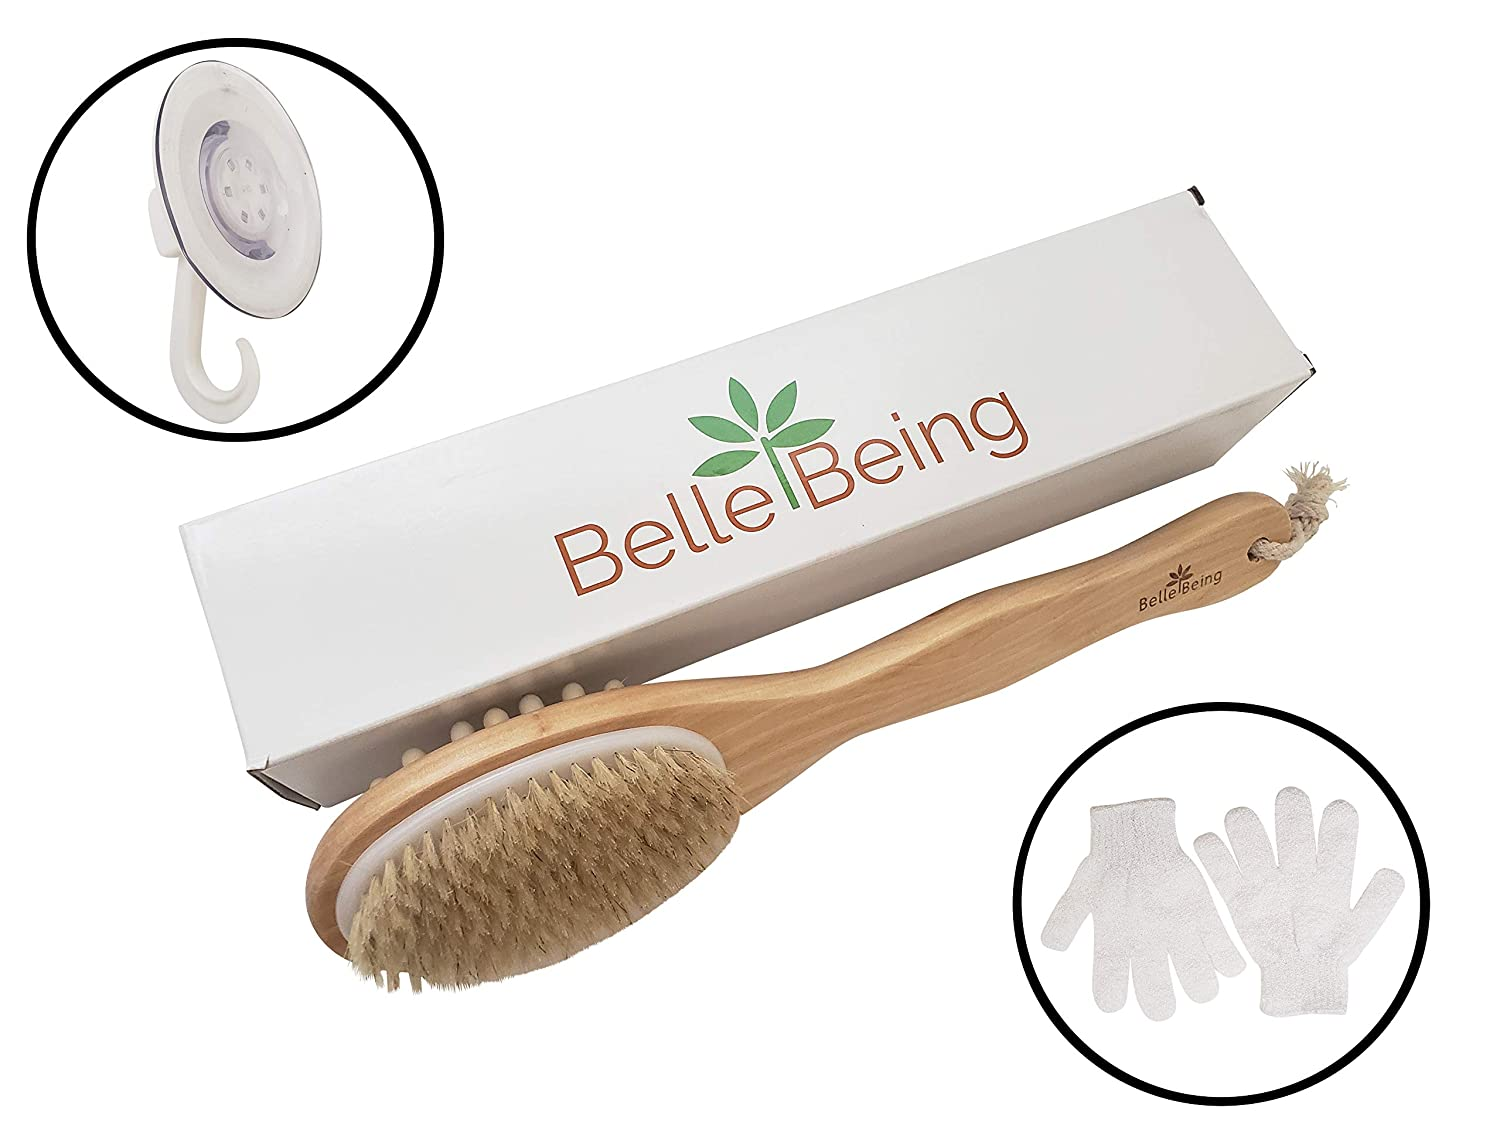 Dry Brush for Cellulite Wholesale and Lymphatic Brushing Drainage. unisex Bod